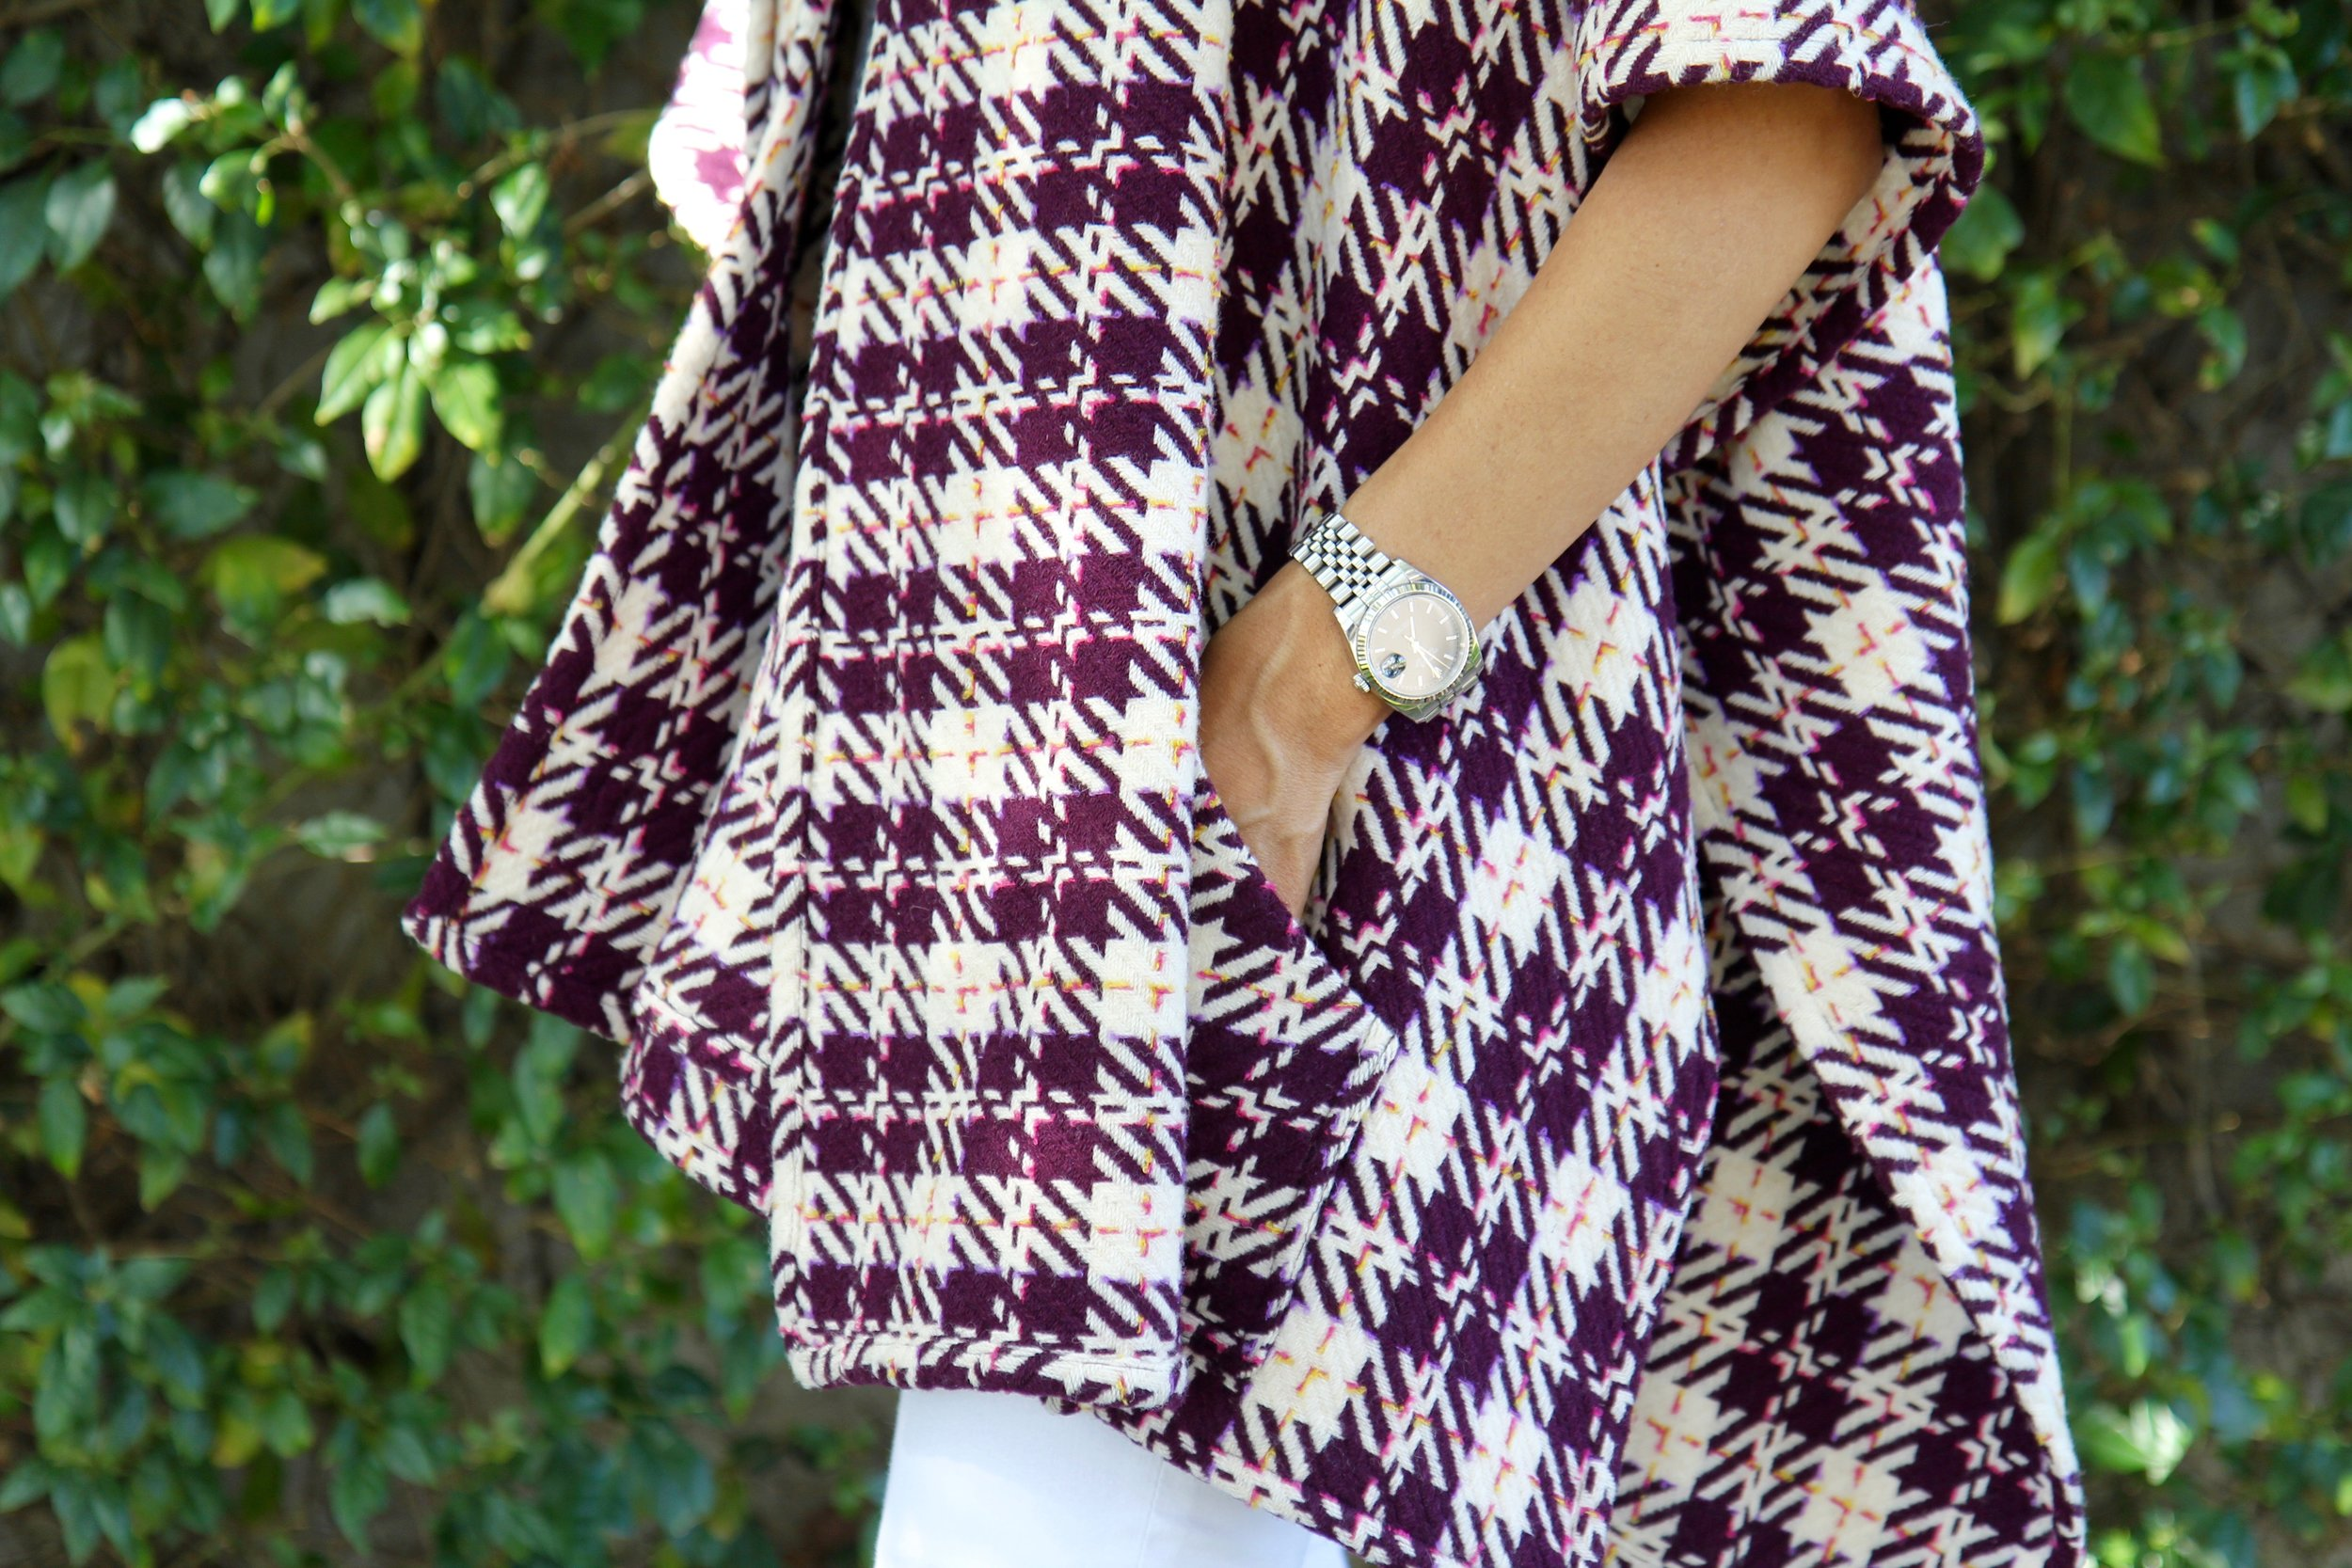 Squares are a common pattern in Fernandez's designs. (Hermosa Journal)